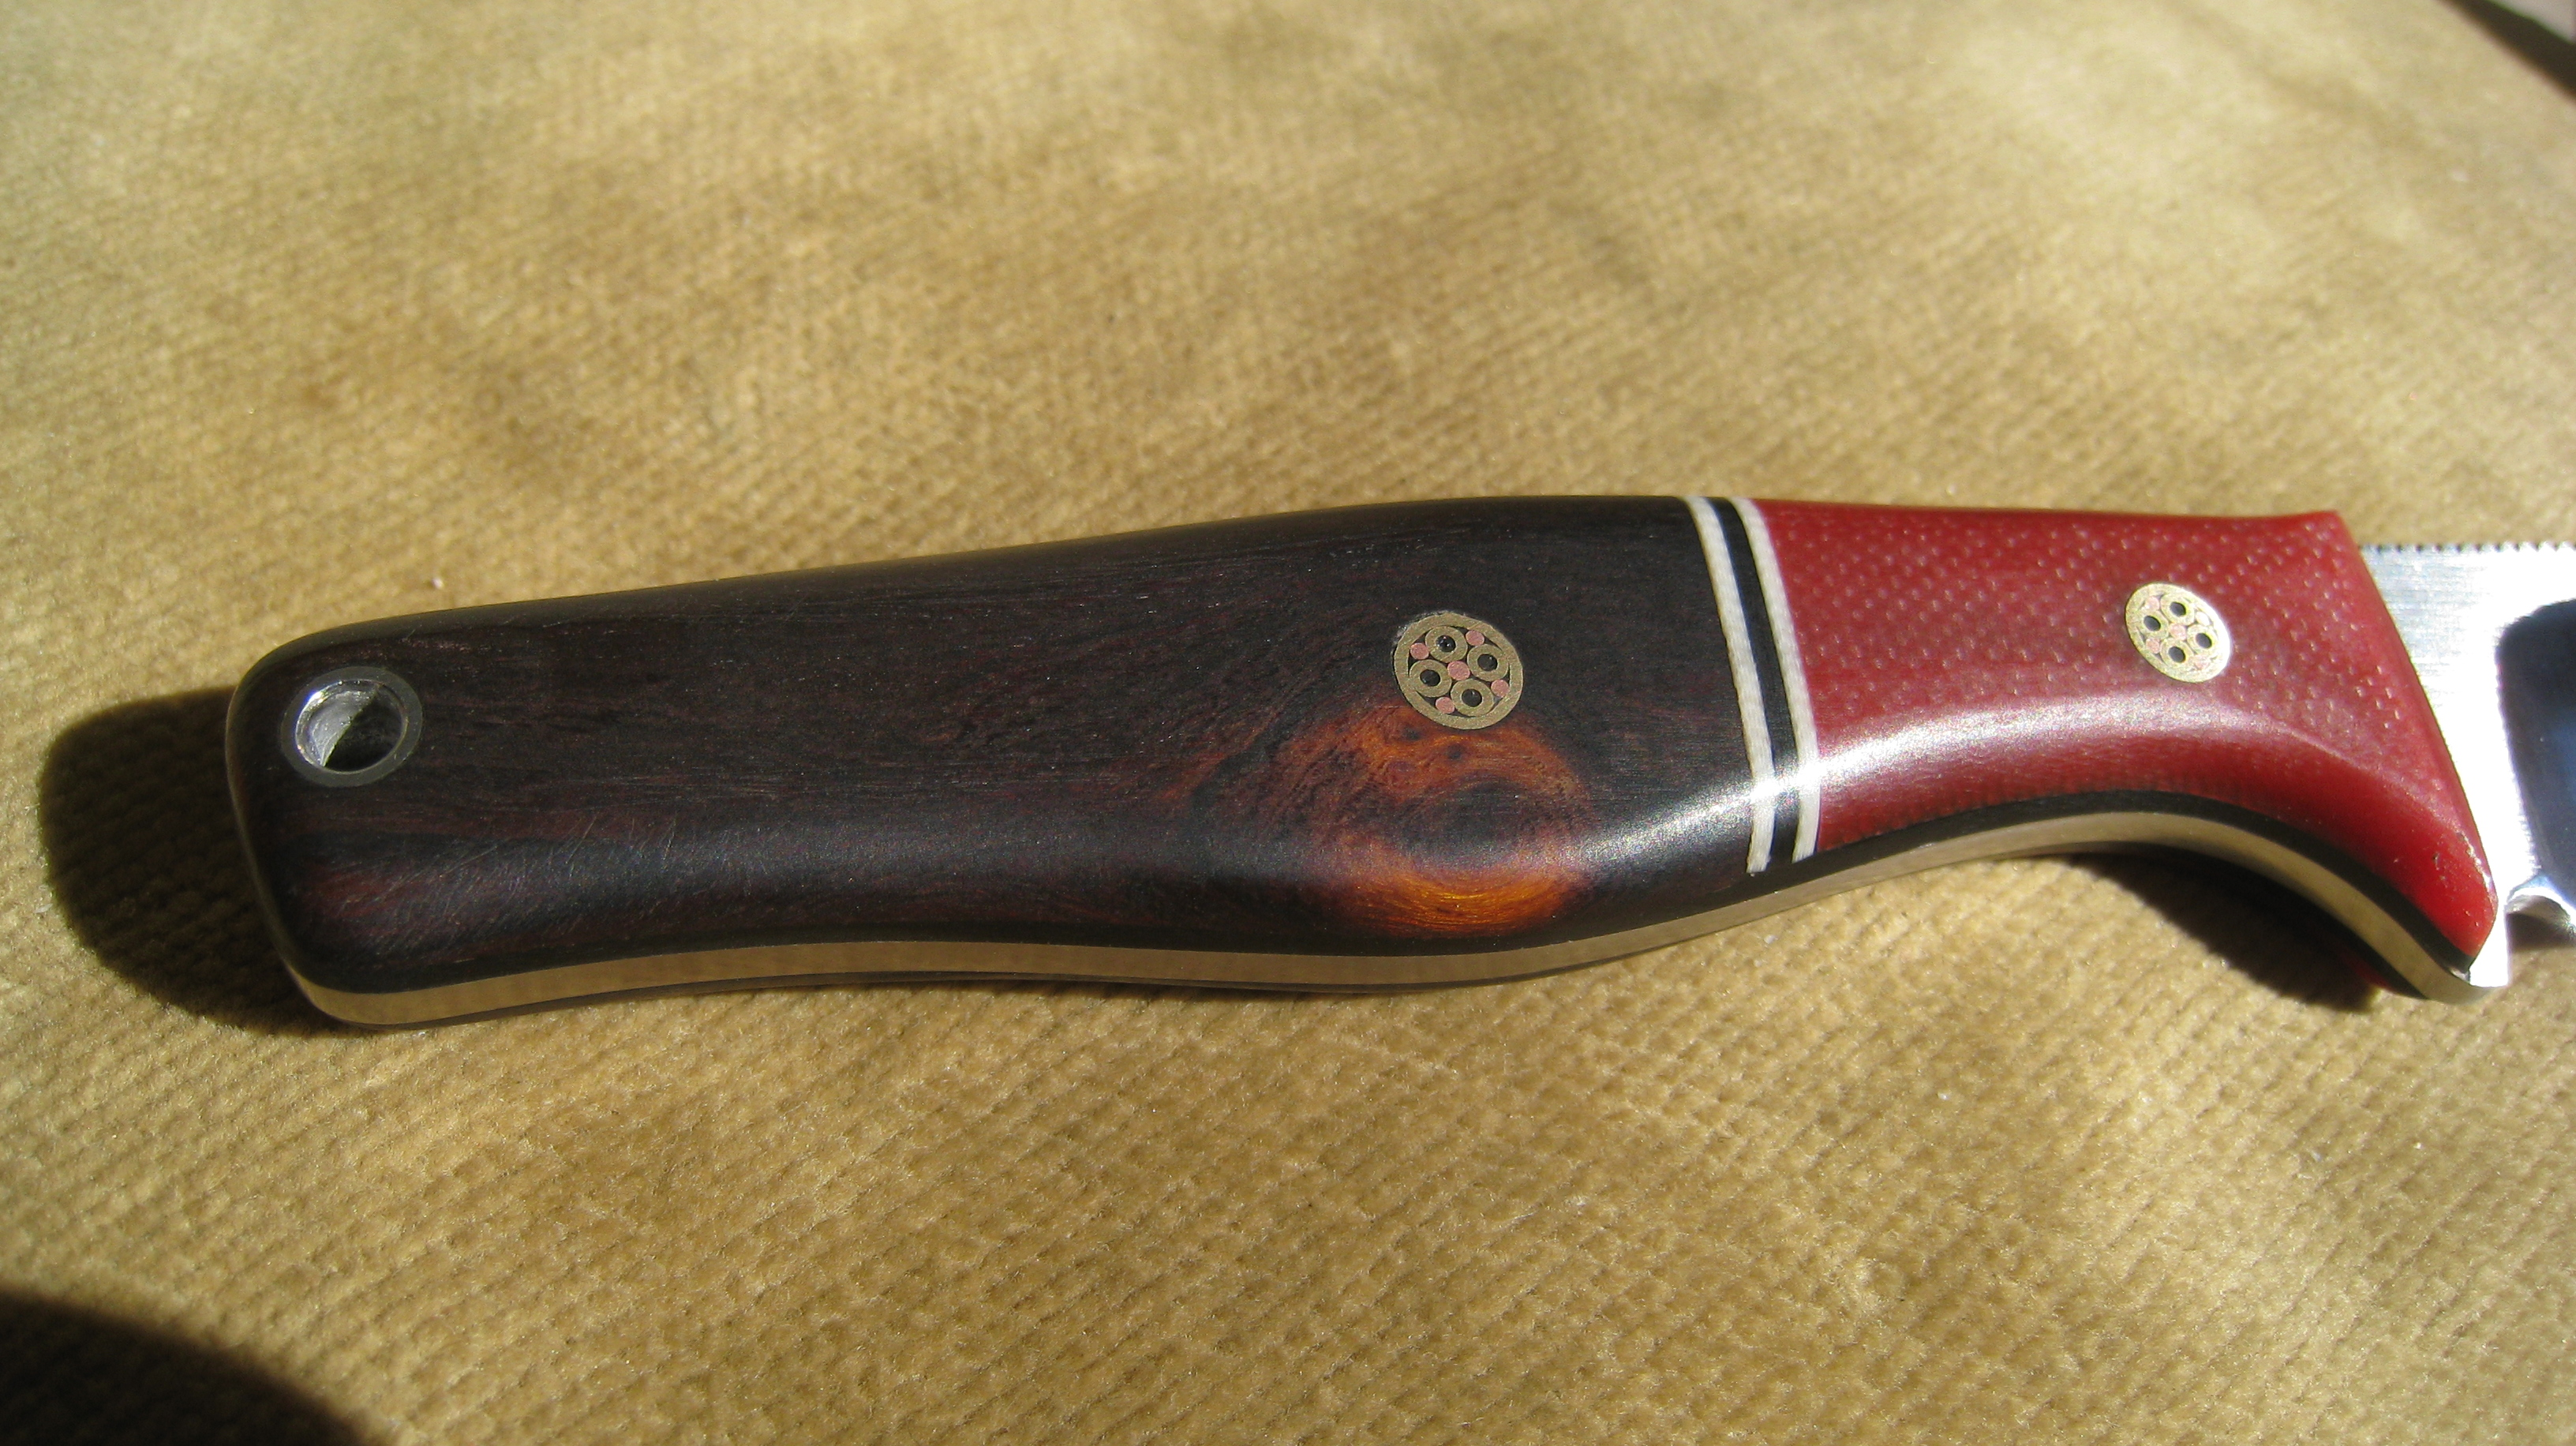 petite 3 blade edc necker in d2 ironwood ad knives. Black Bedroom Furniture Sets. Home Design Ideas